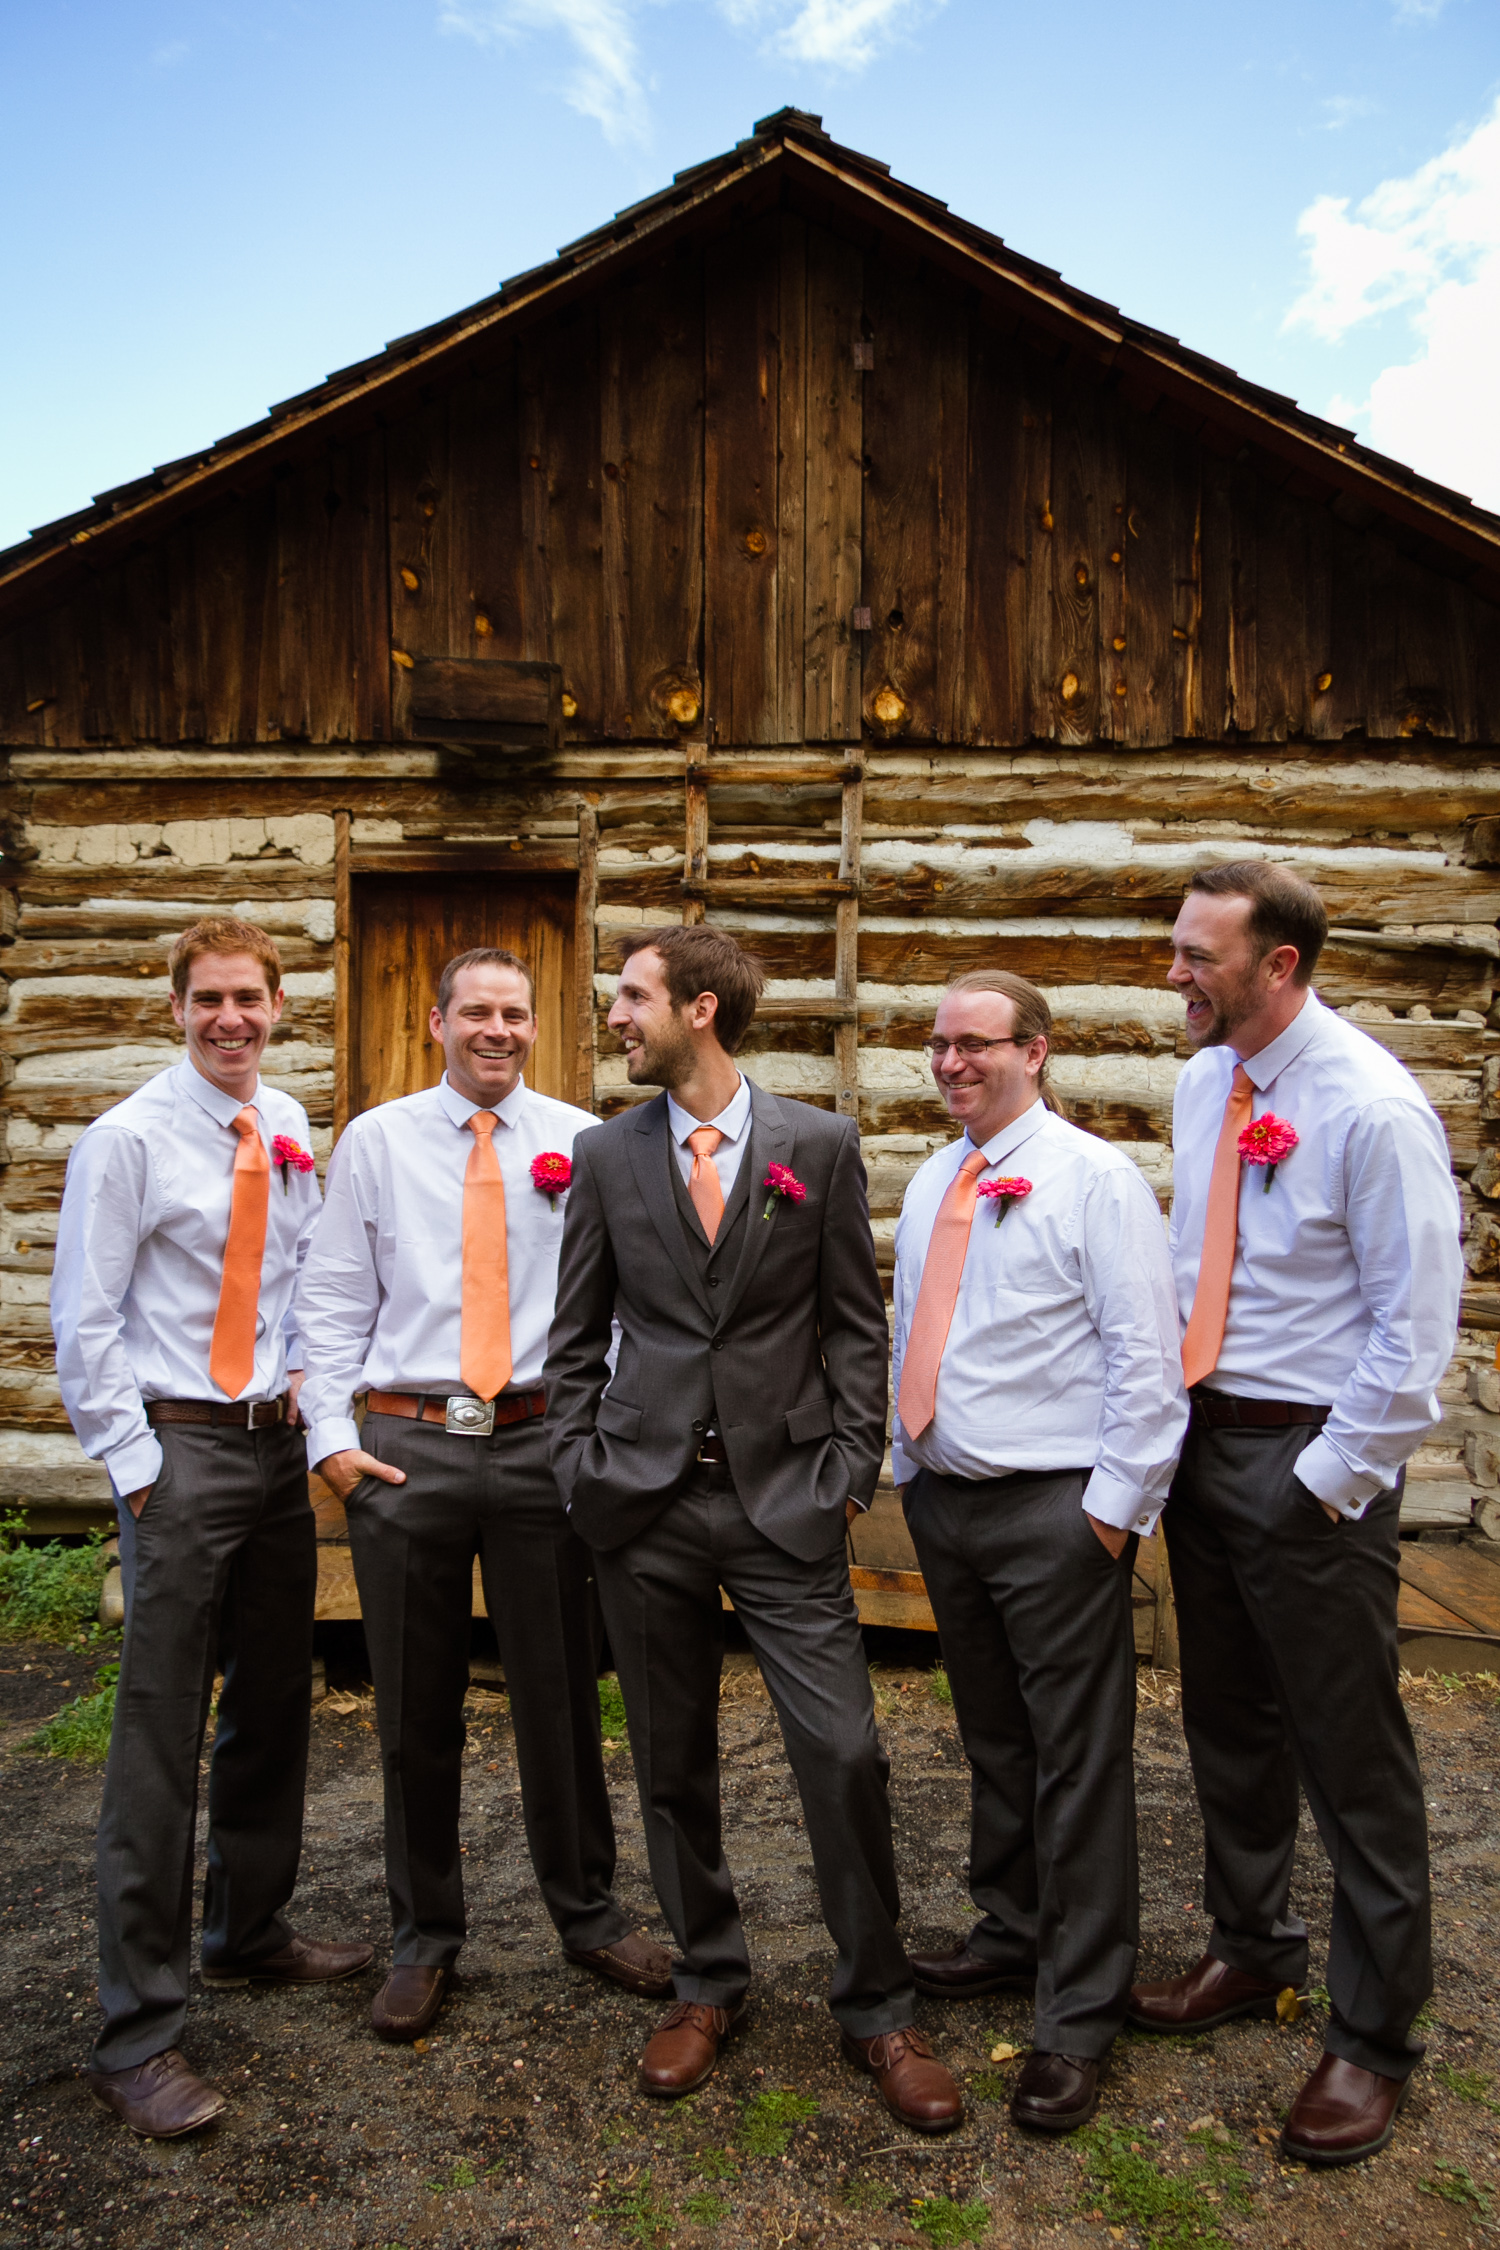 Coal_Creek_Canyon_Wedding_017.JPG